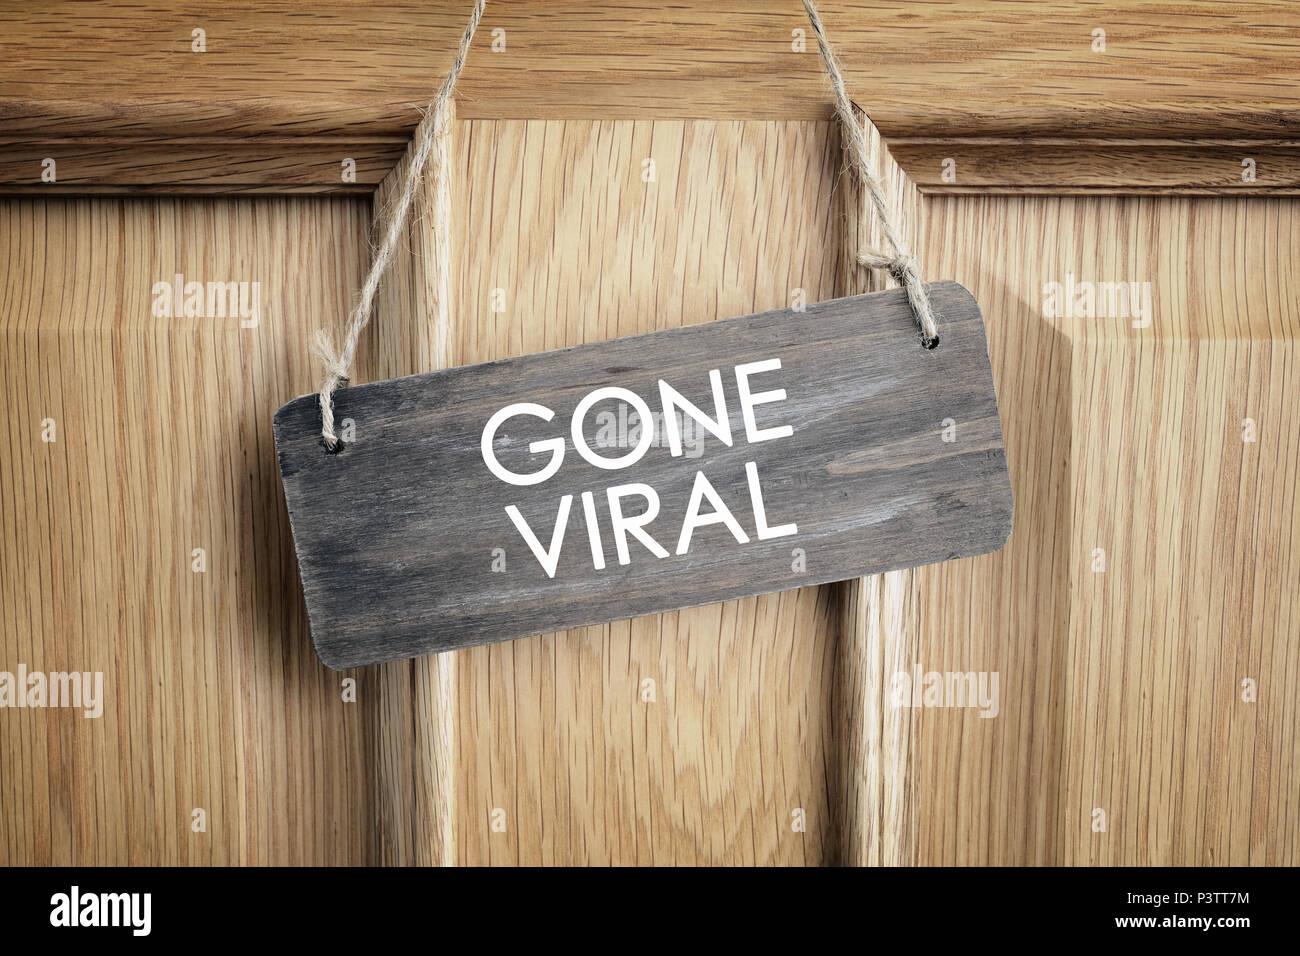 Gone viral sign on office door concept for internet marketing and social networking - Stock Image